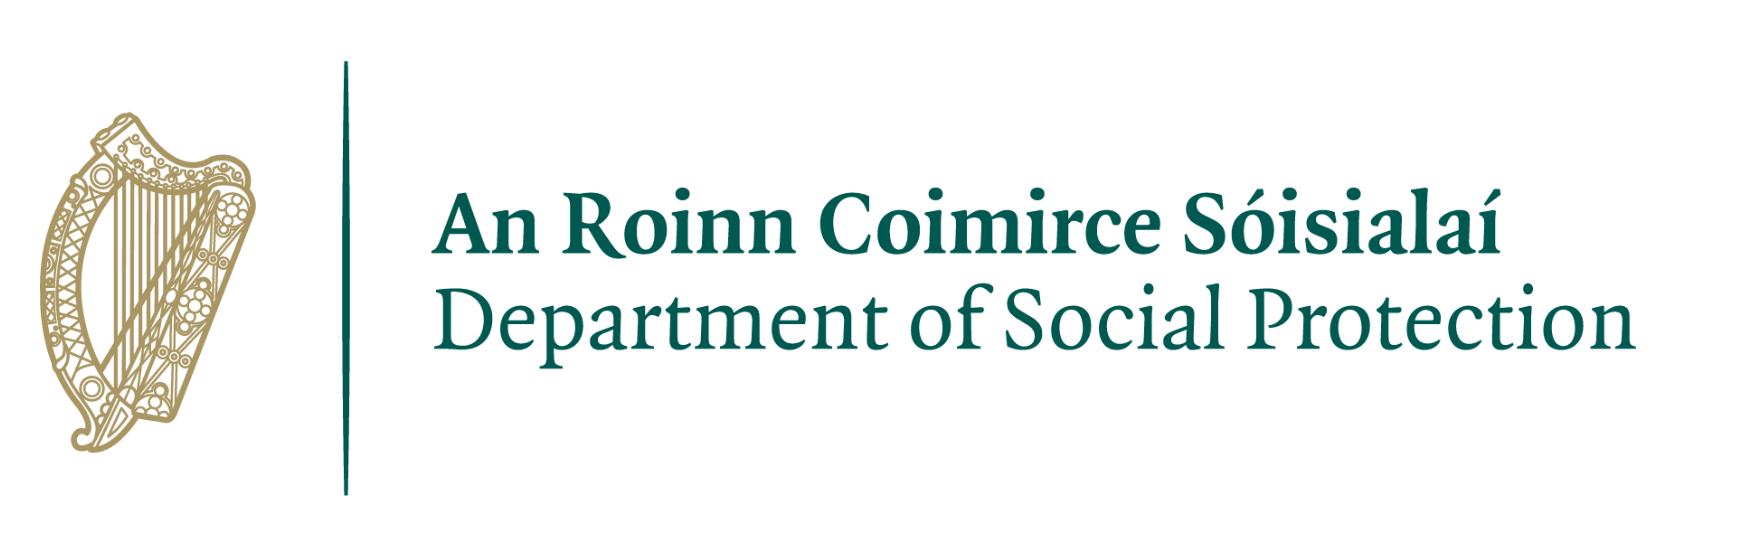 department-of-social-protection